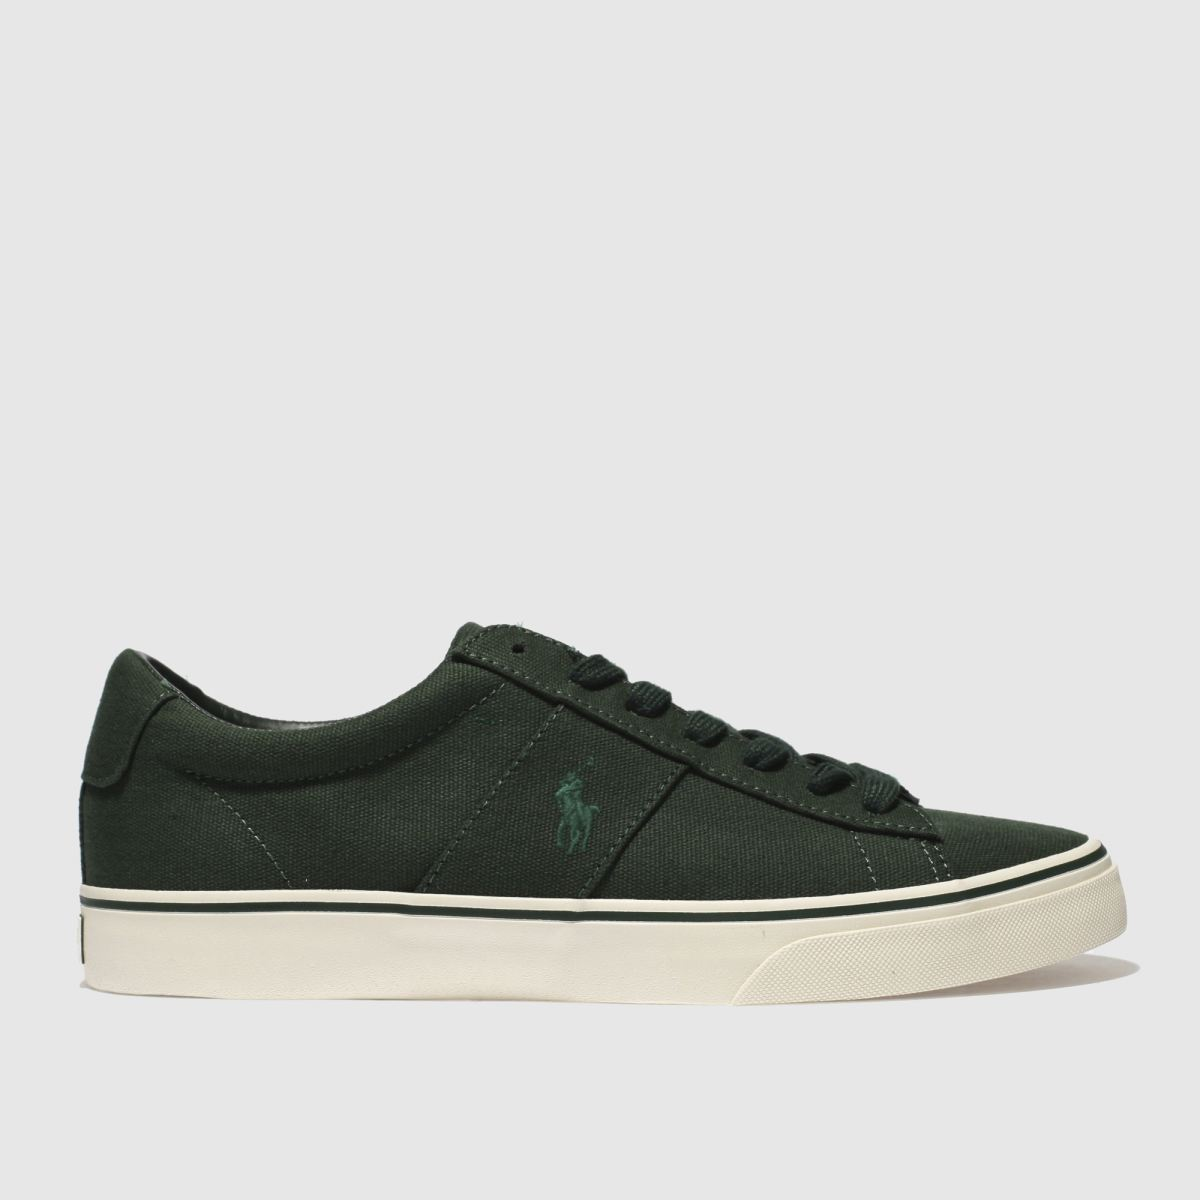 Polo Ralph Lauren Dark Green Sayer Ne Trainers